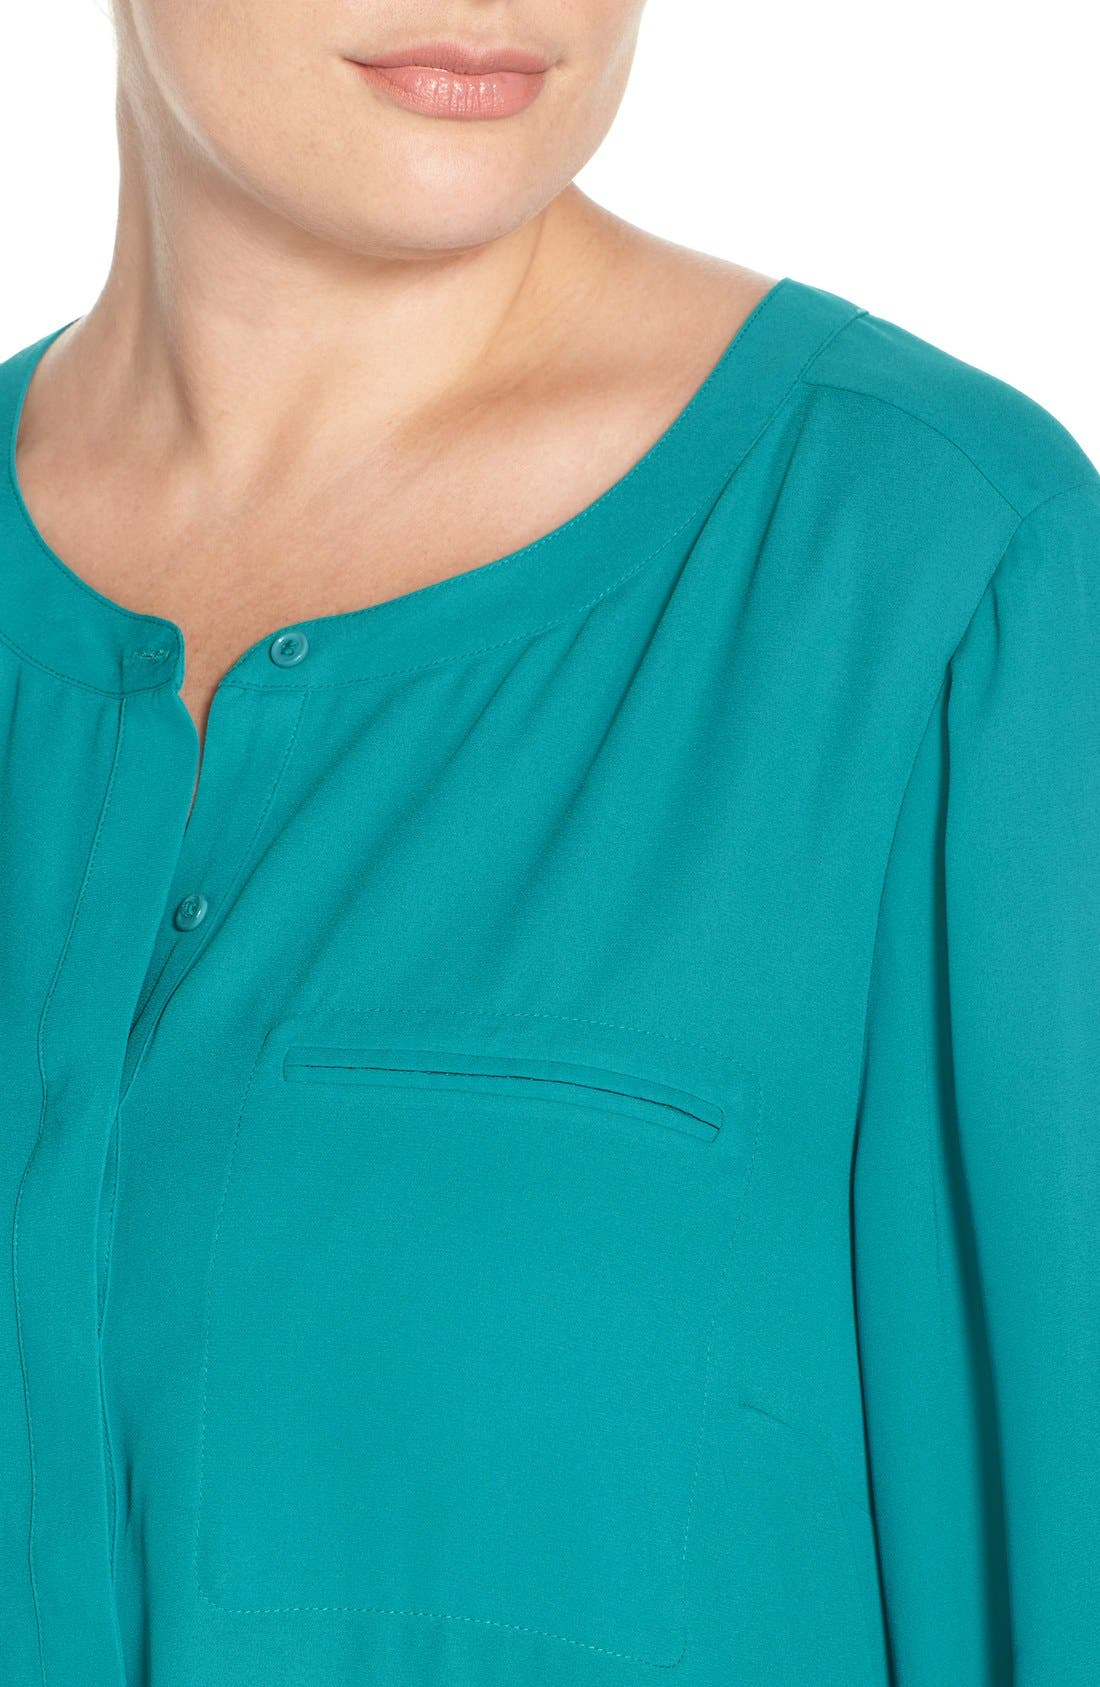 Henley Top,                             Alternate thumbnail 405, color,